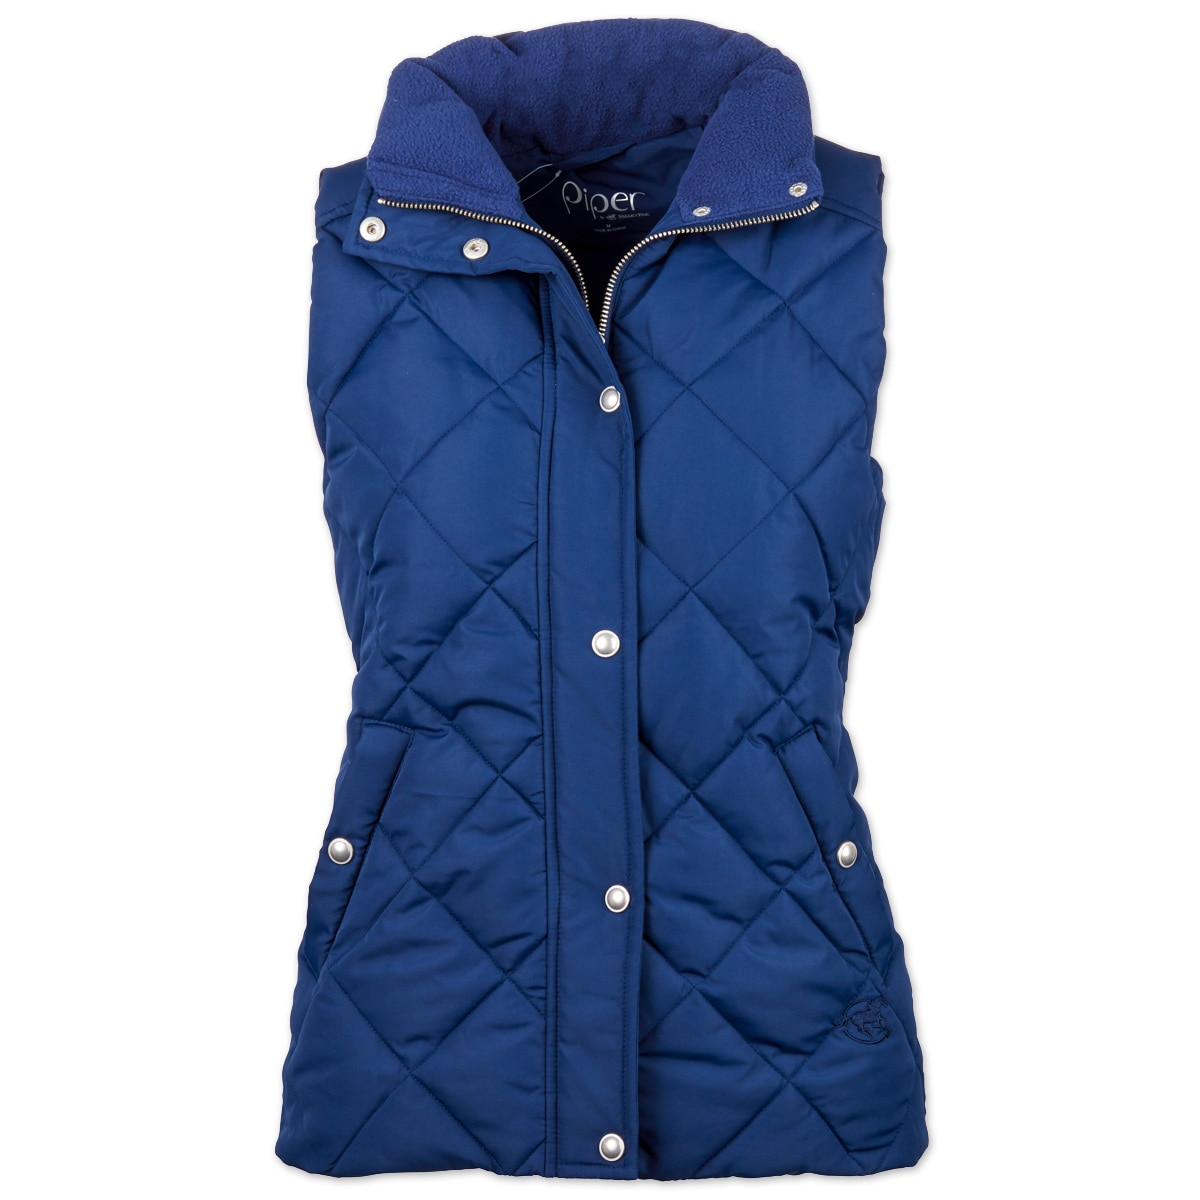 Piper Quilted Vest